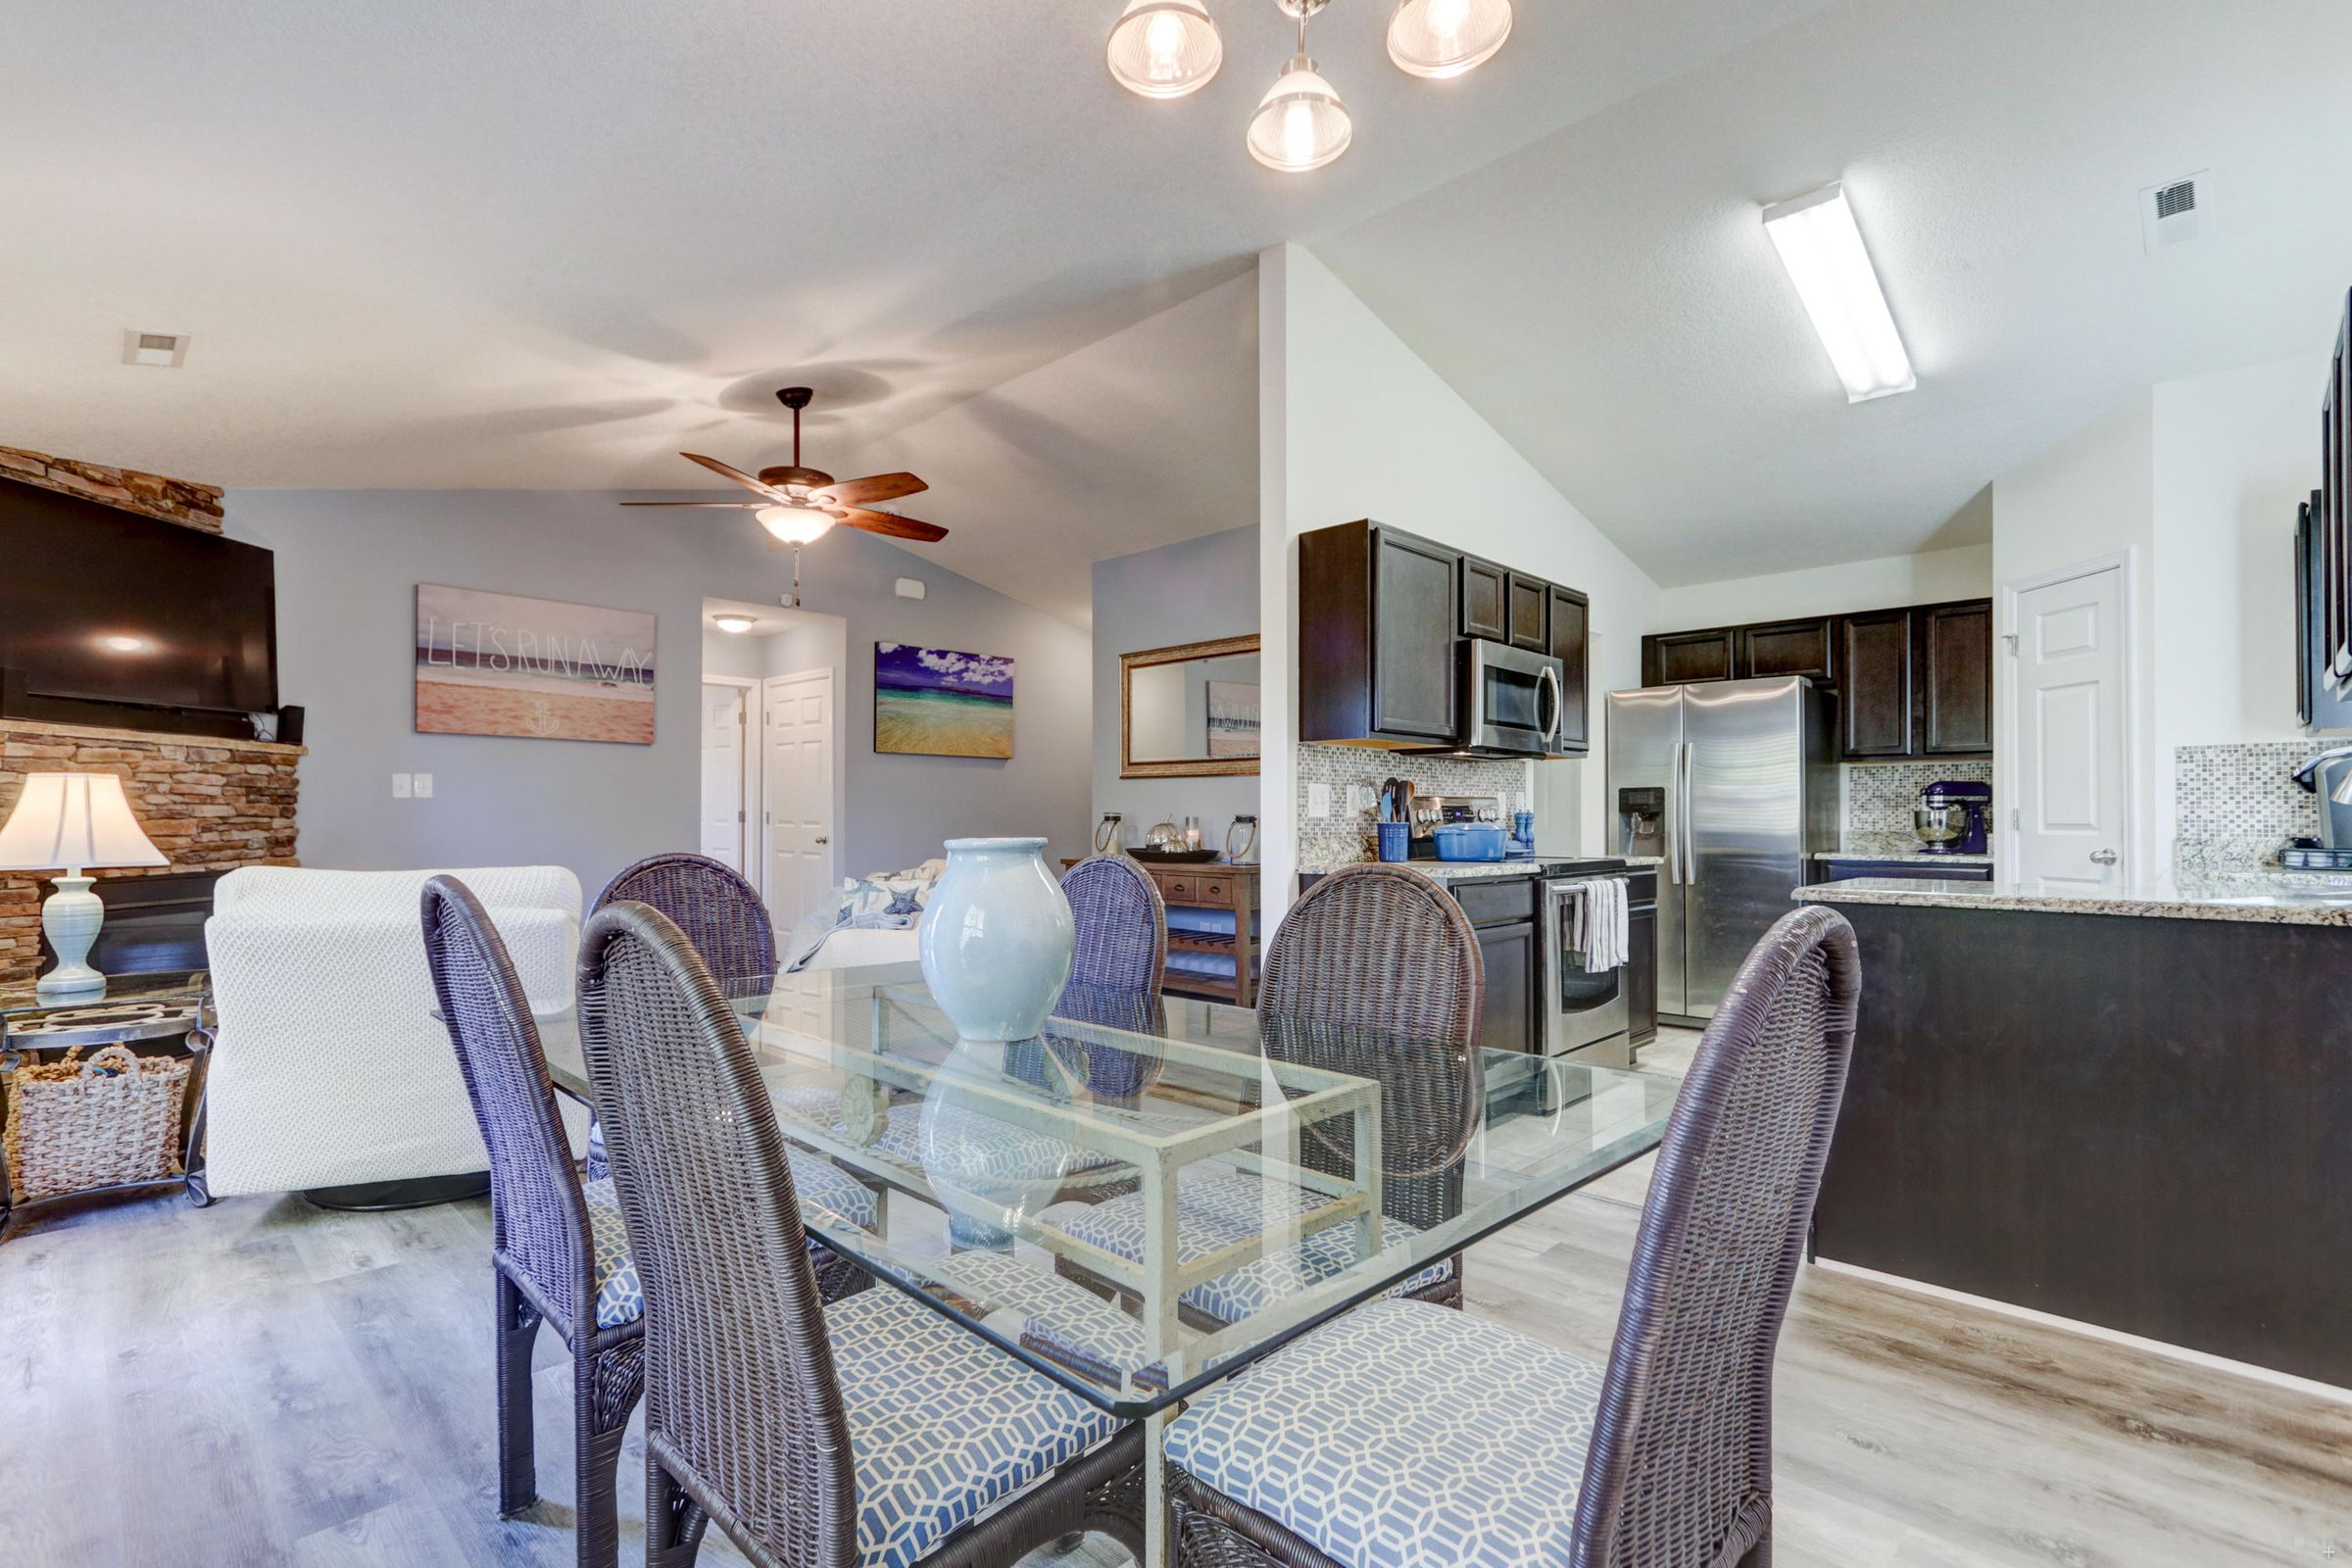 Dining into Kitchen/Living